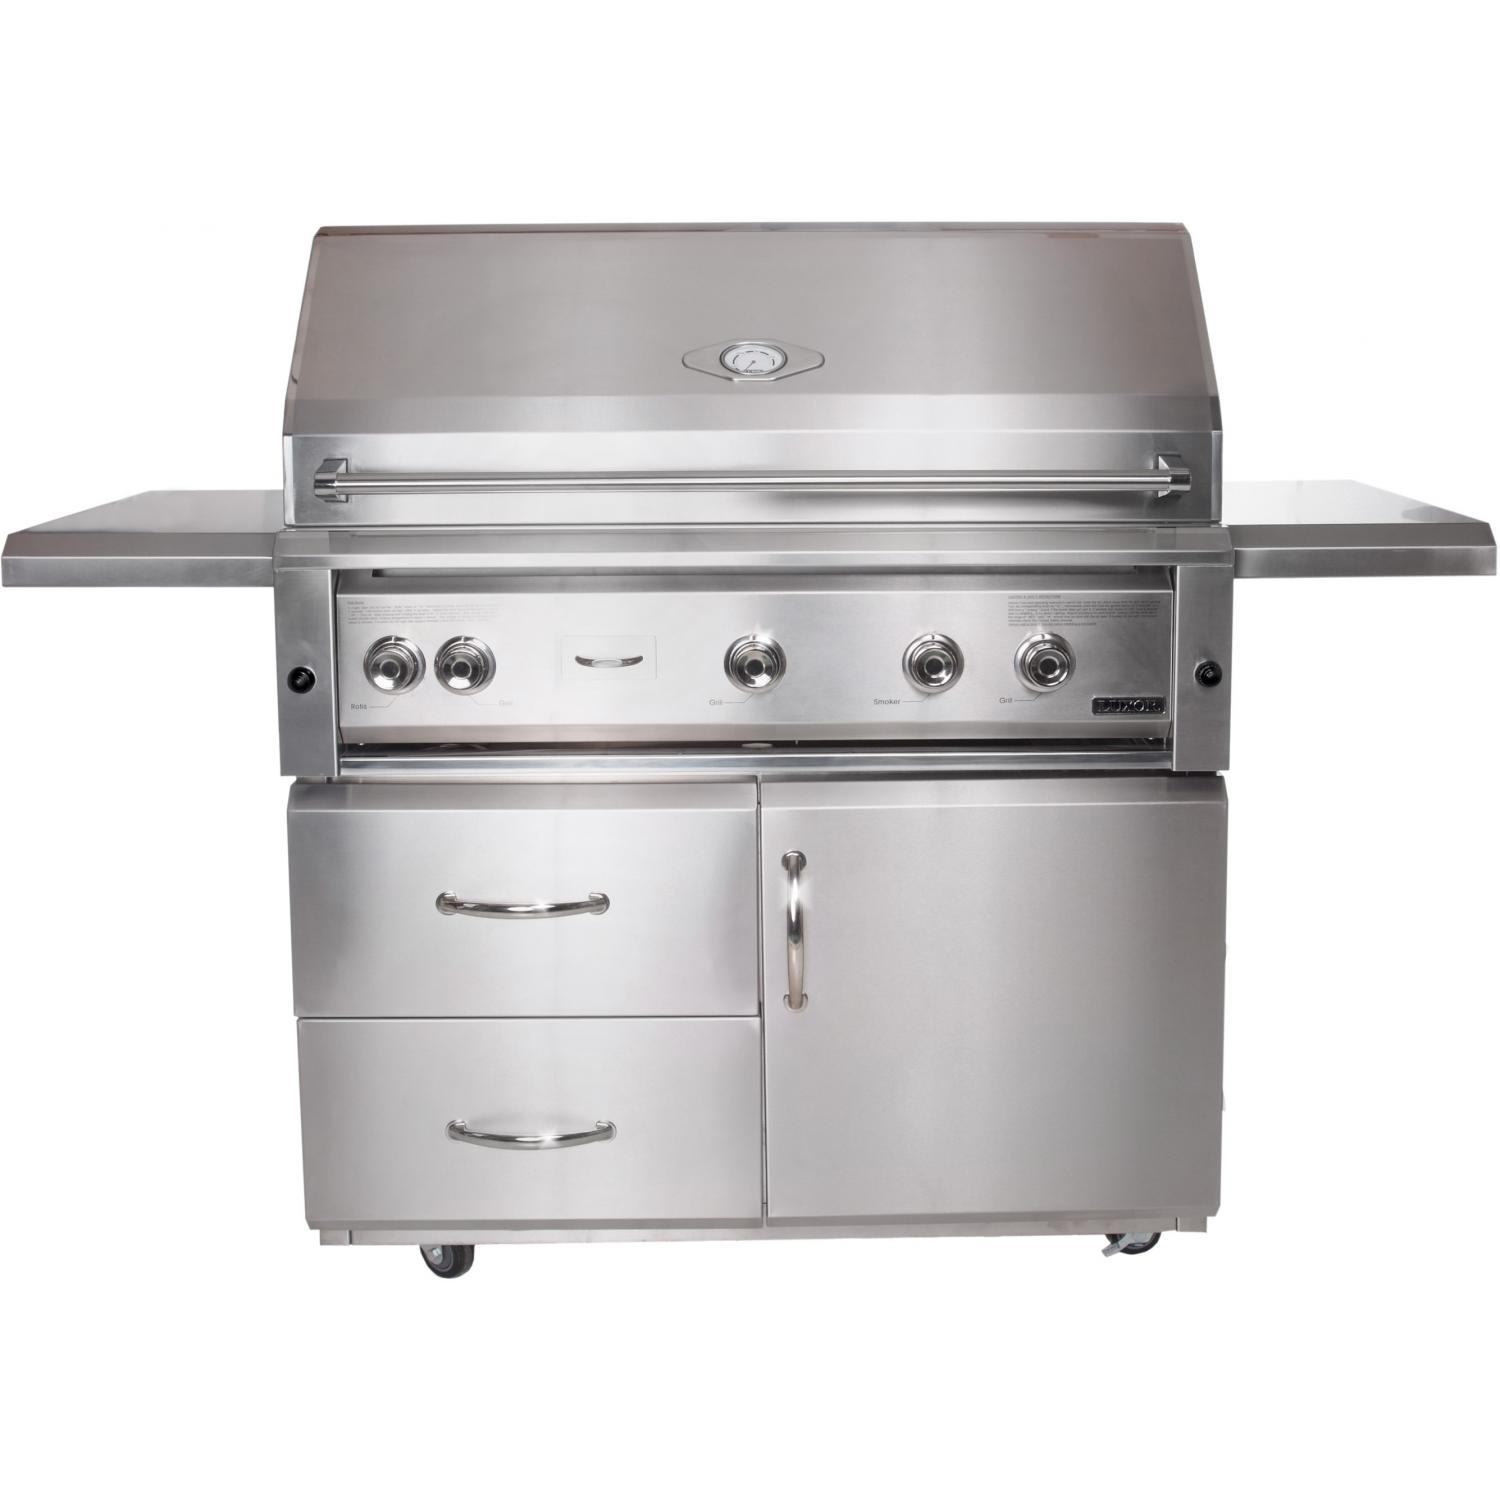 Luxor Gas Grills 42 Inch Propane Gas Grill On Cart With 1 Infrared Burner And Rotisserie AHT-42CV-FR-LP 1